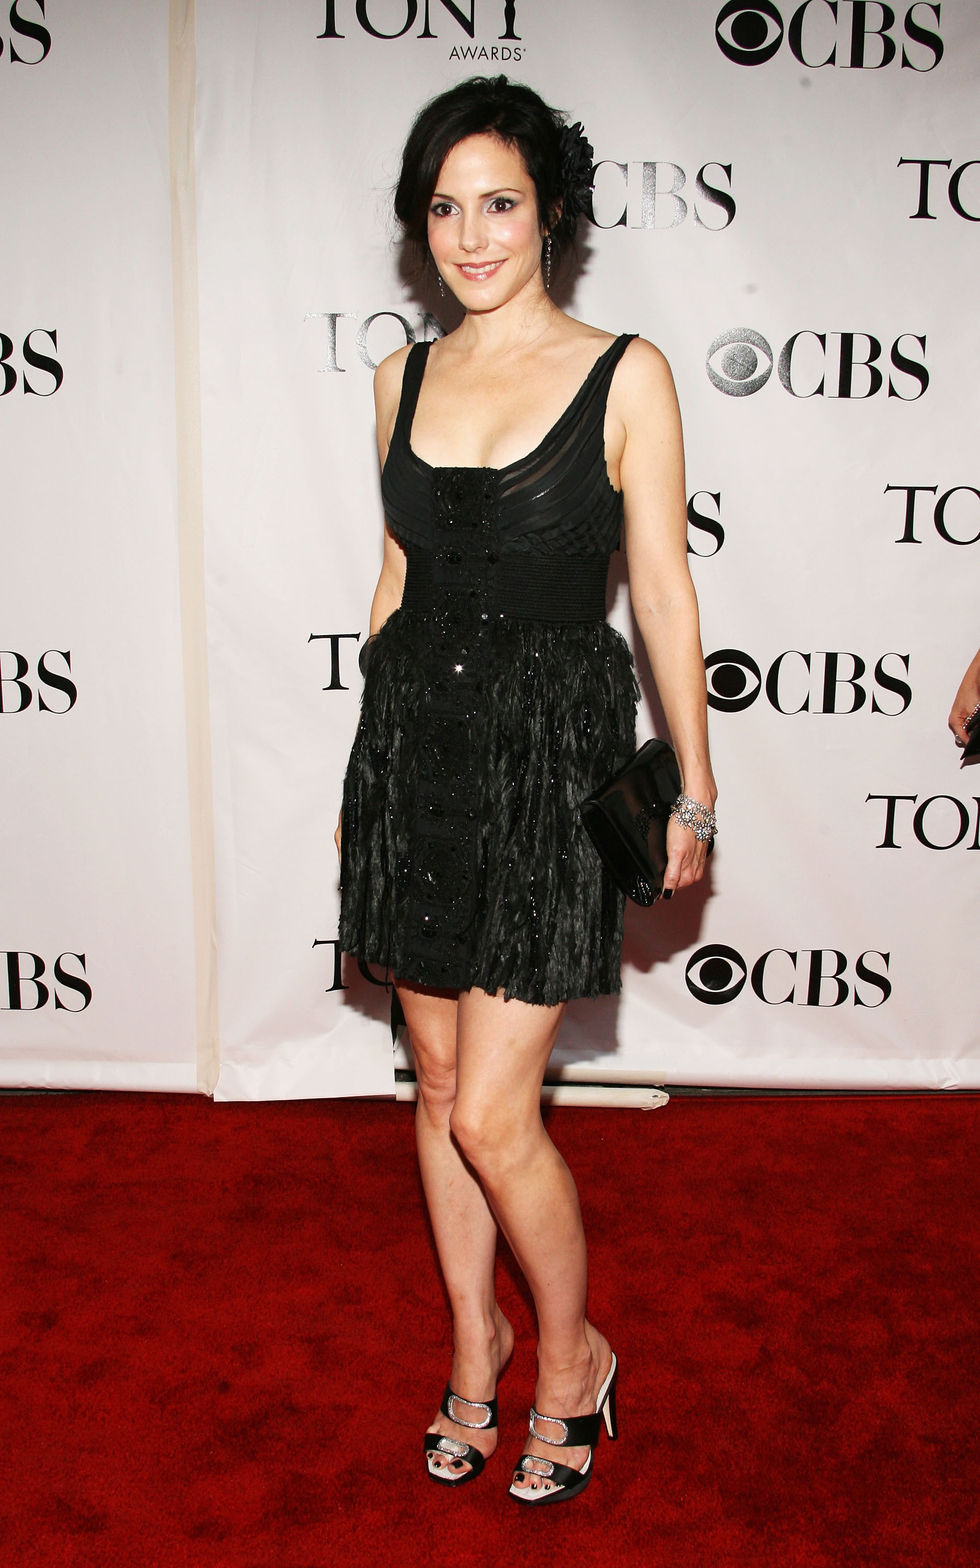 mary-louise-parker-62nd-annual-tony-awards-in-new-york-city-01